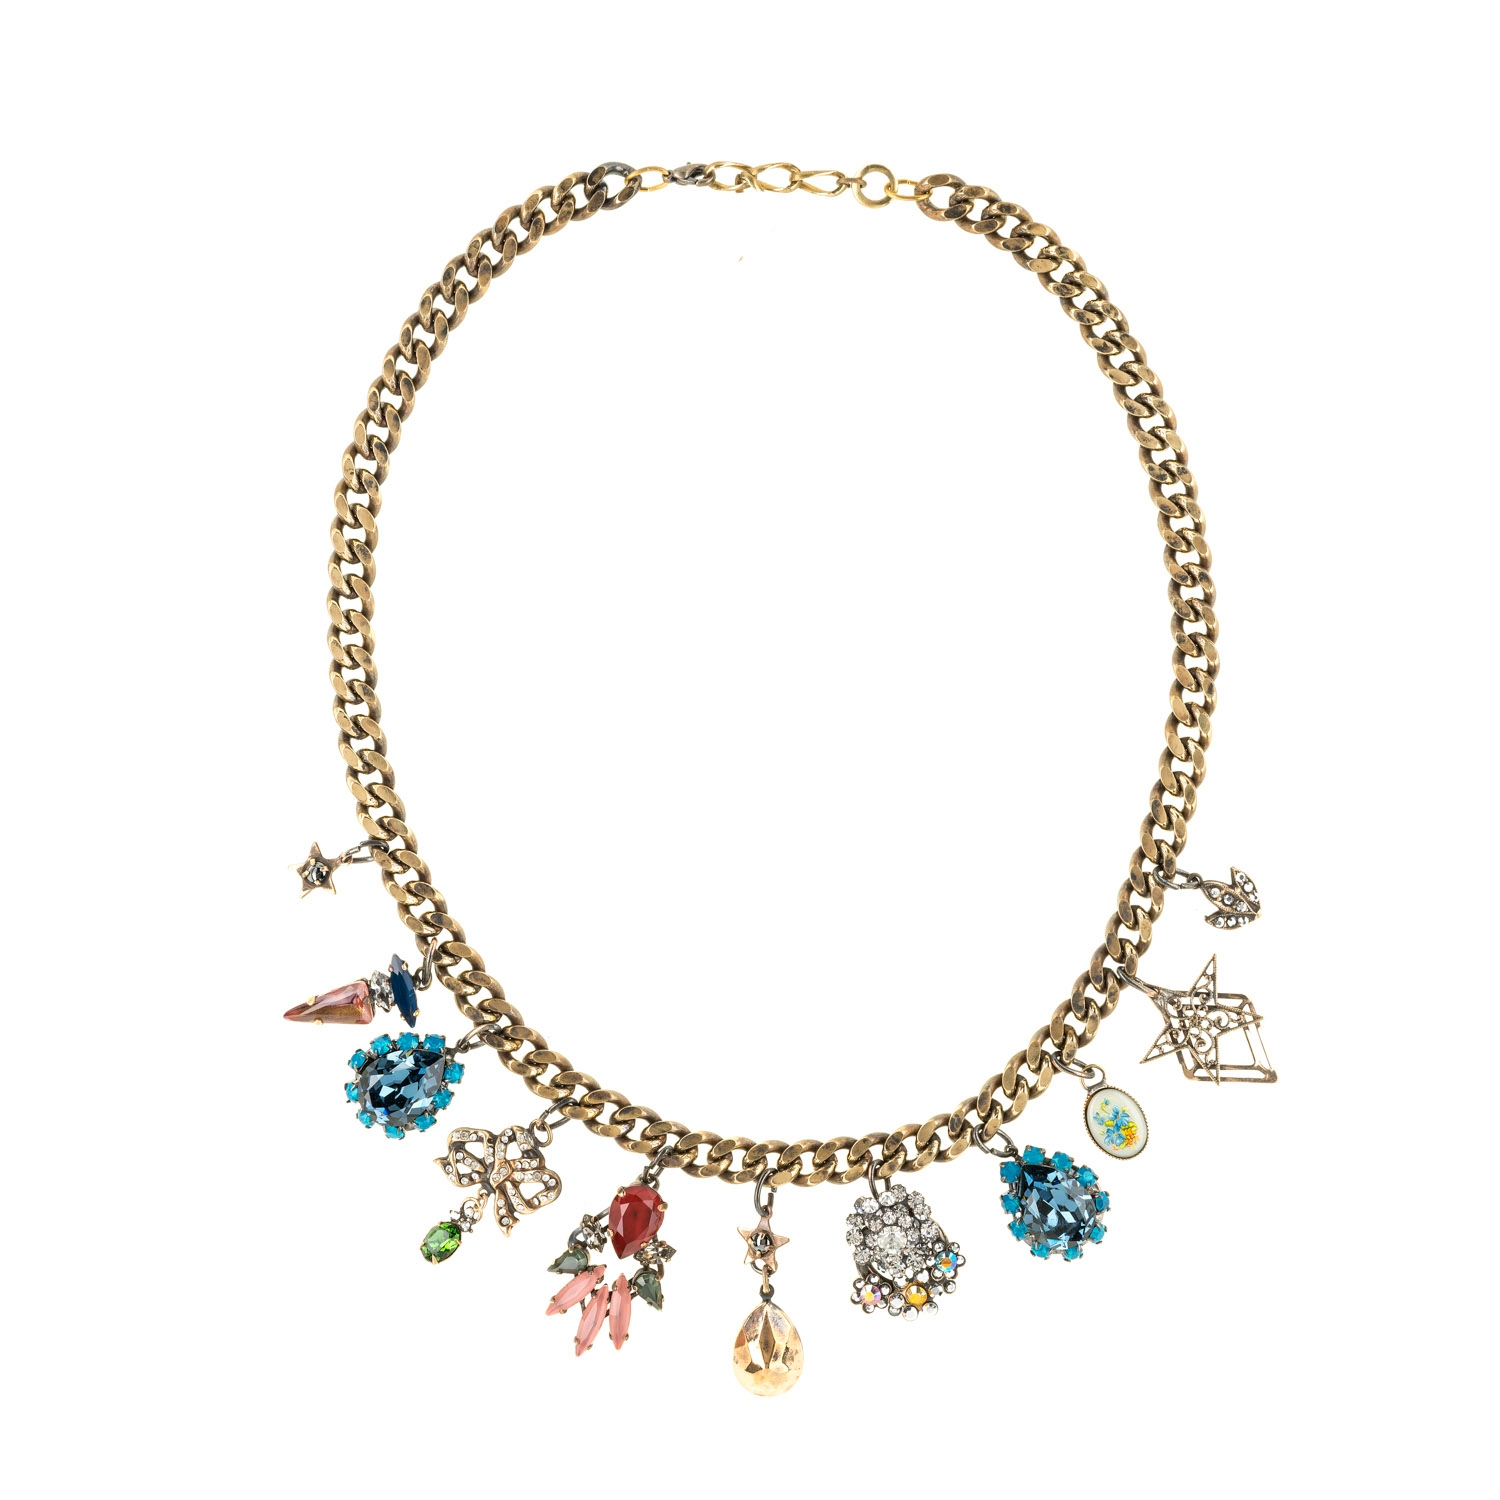 HALO & CO BEJEWELLED VINTAGE CHARM NECKLACE FOR ADDED DRAMA